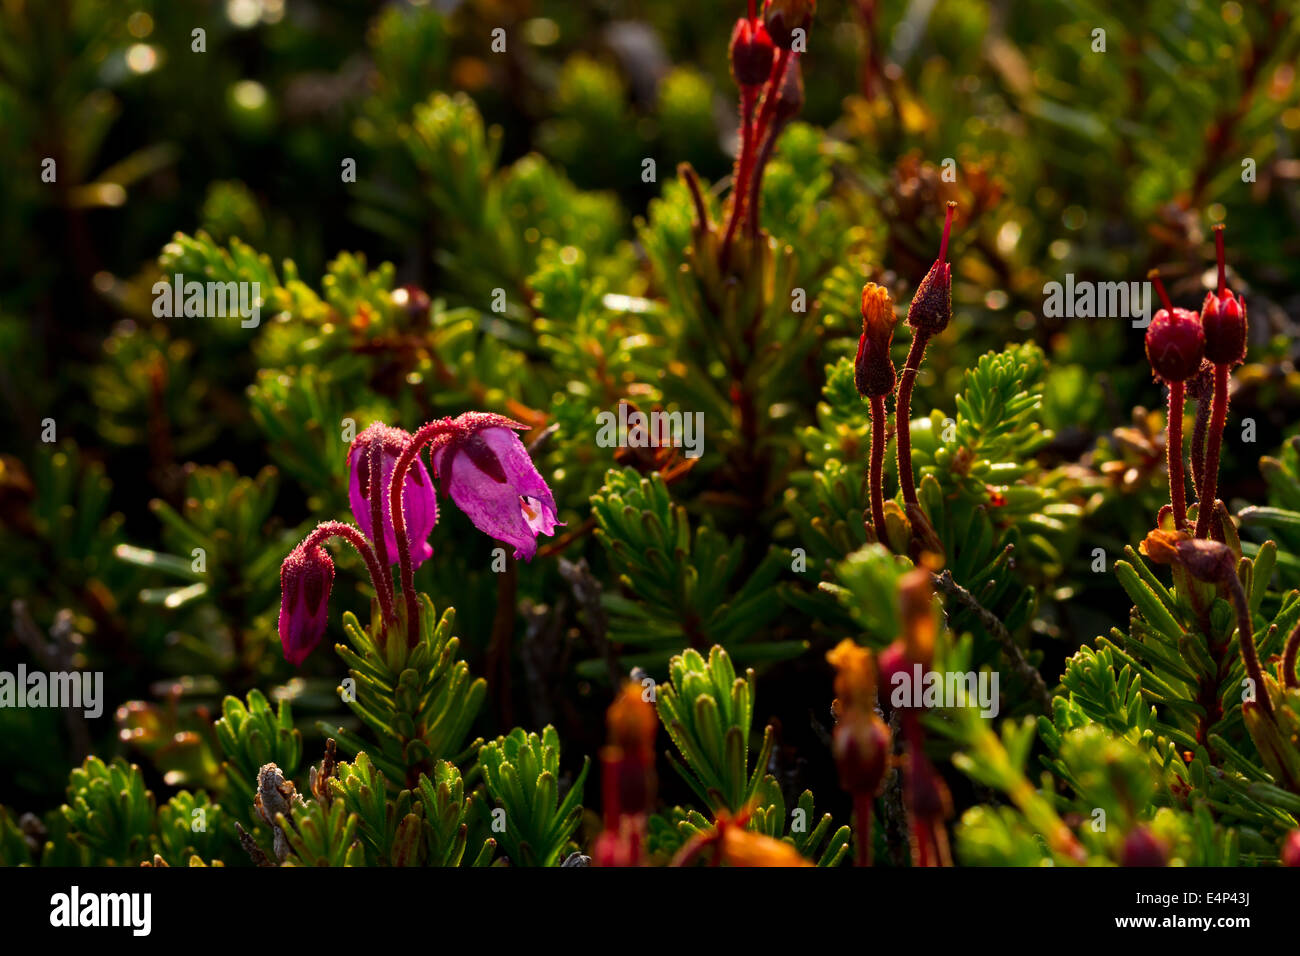 Crowberry (Empetrum nigrum) flowers growing in the Norwegian mountains. Stock Photo